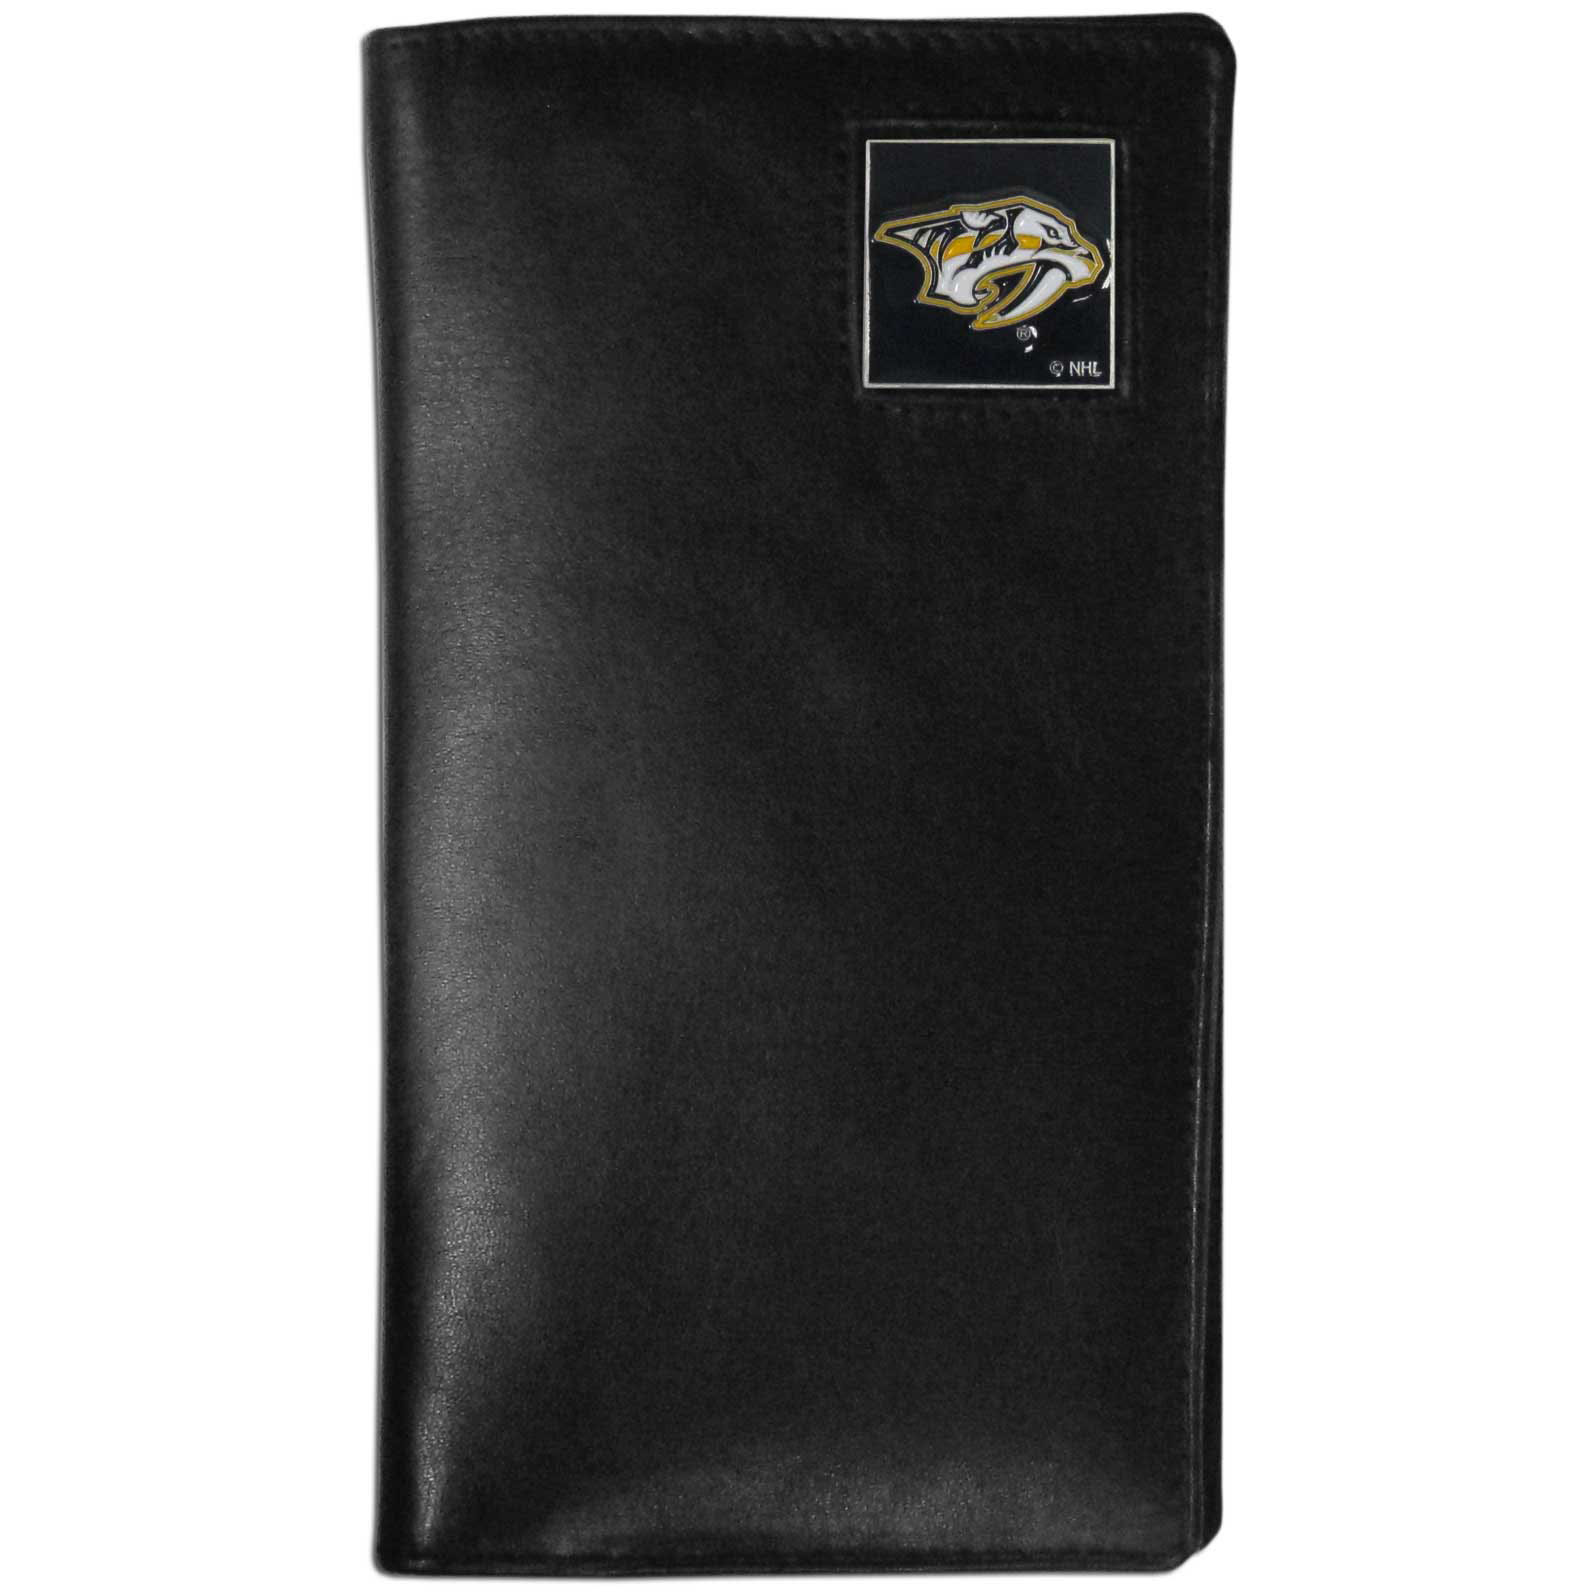 Nashville Predators Tall Leather Wallet - This officially licensed Nashville Predators tall leather wallet cover is made of high quality leather with a fully cast metal Nashville Predators emblem with enameled Nashville Predators color detail. The tall leather wallet cover fits both side and top loaded checks and includes a large zippered pocket, windowed ID slot, numerous credit card slots and billfold pocket.